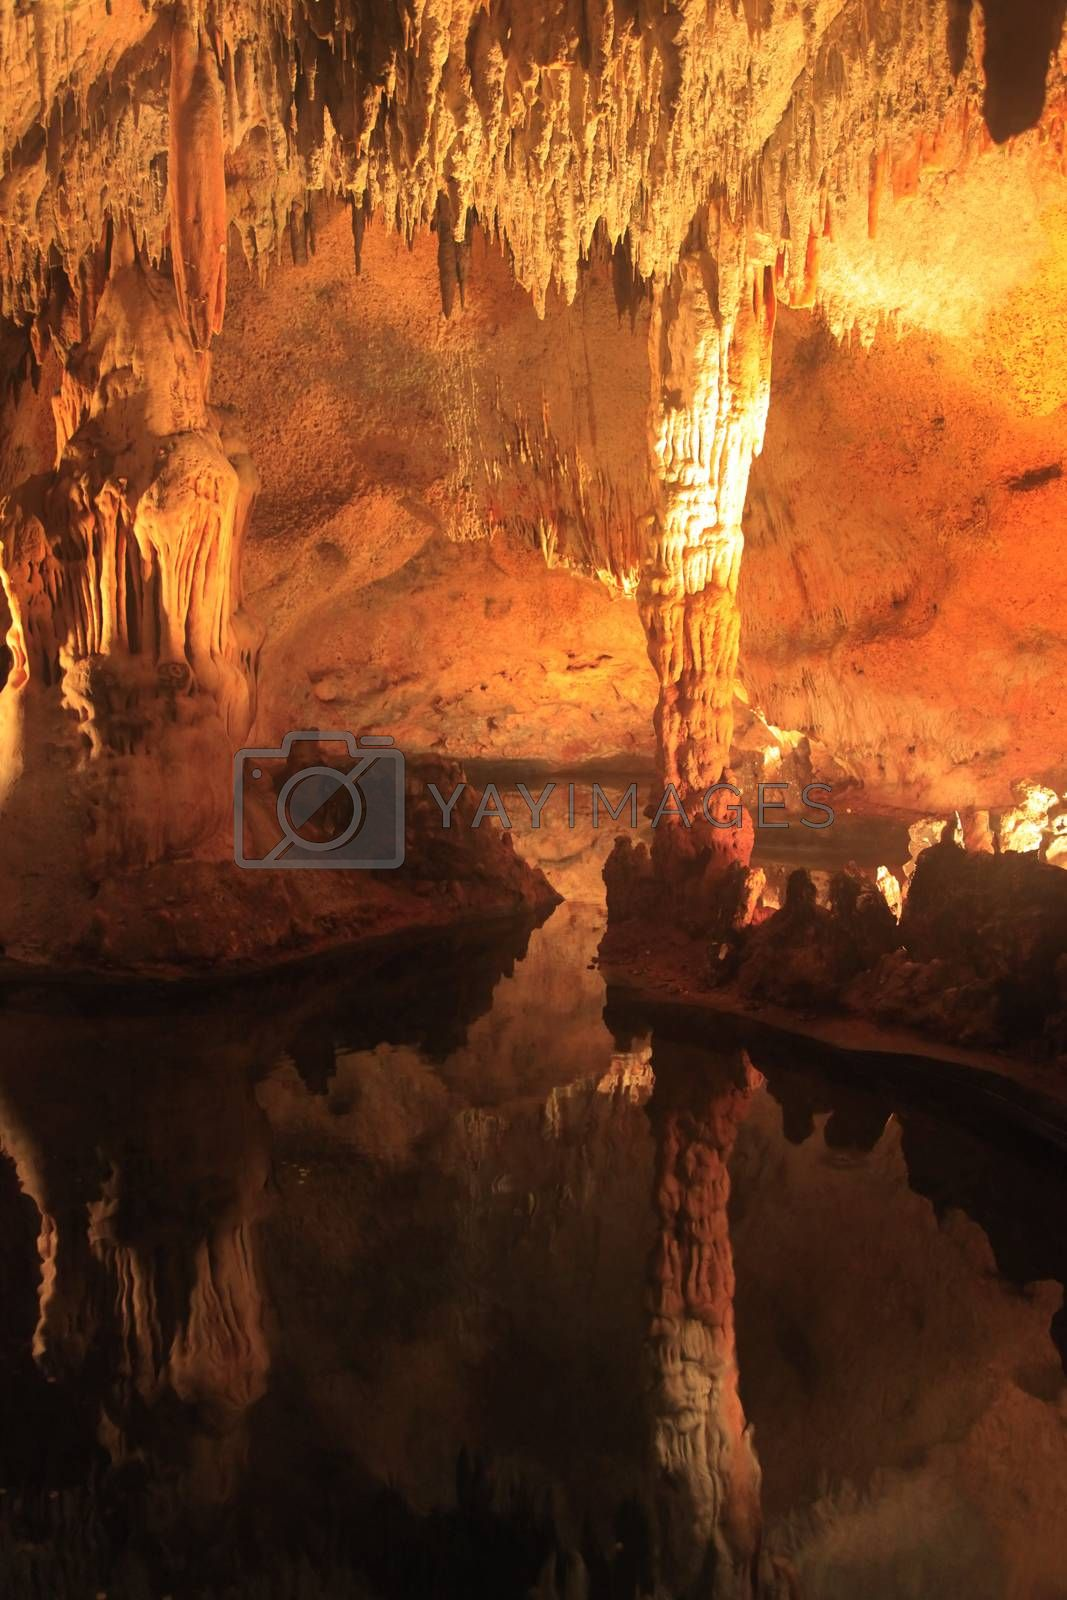 Cueva de las Maravillas. Cave of Wonders - one of the main natural attractions of the Dominican Republic, preserved in its original form